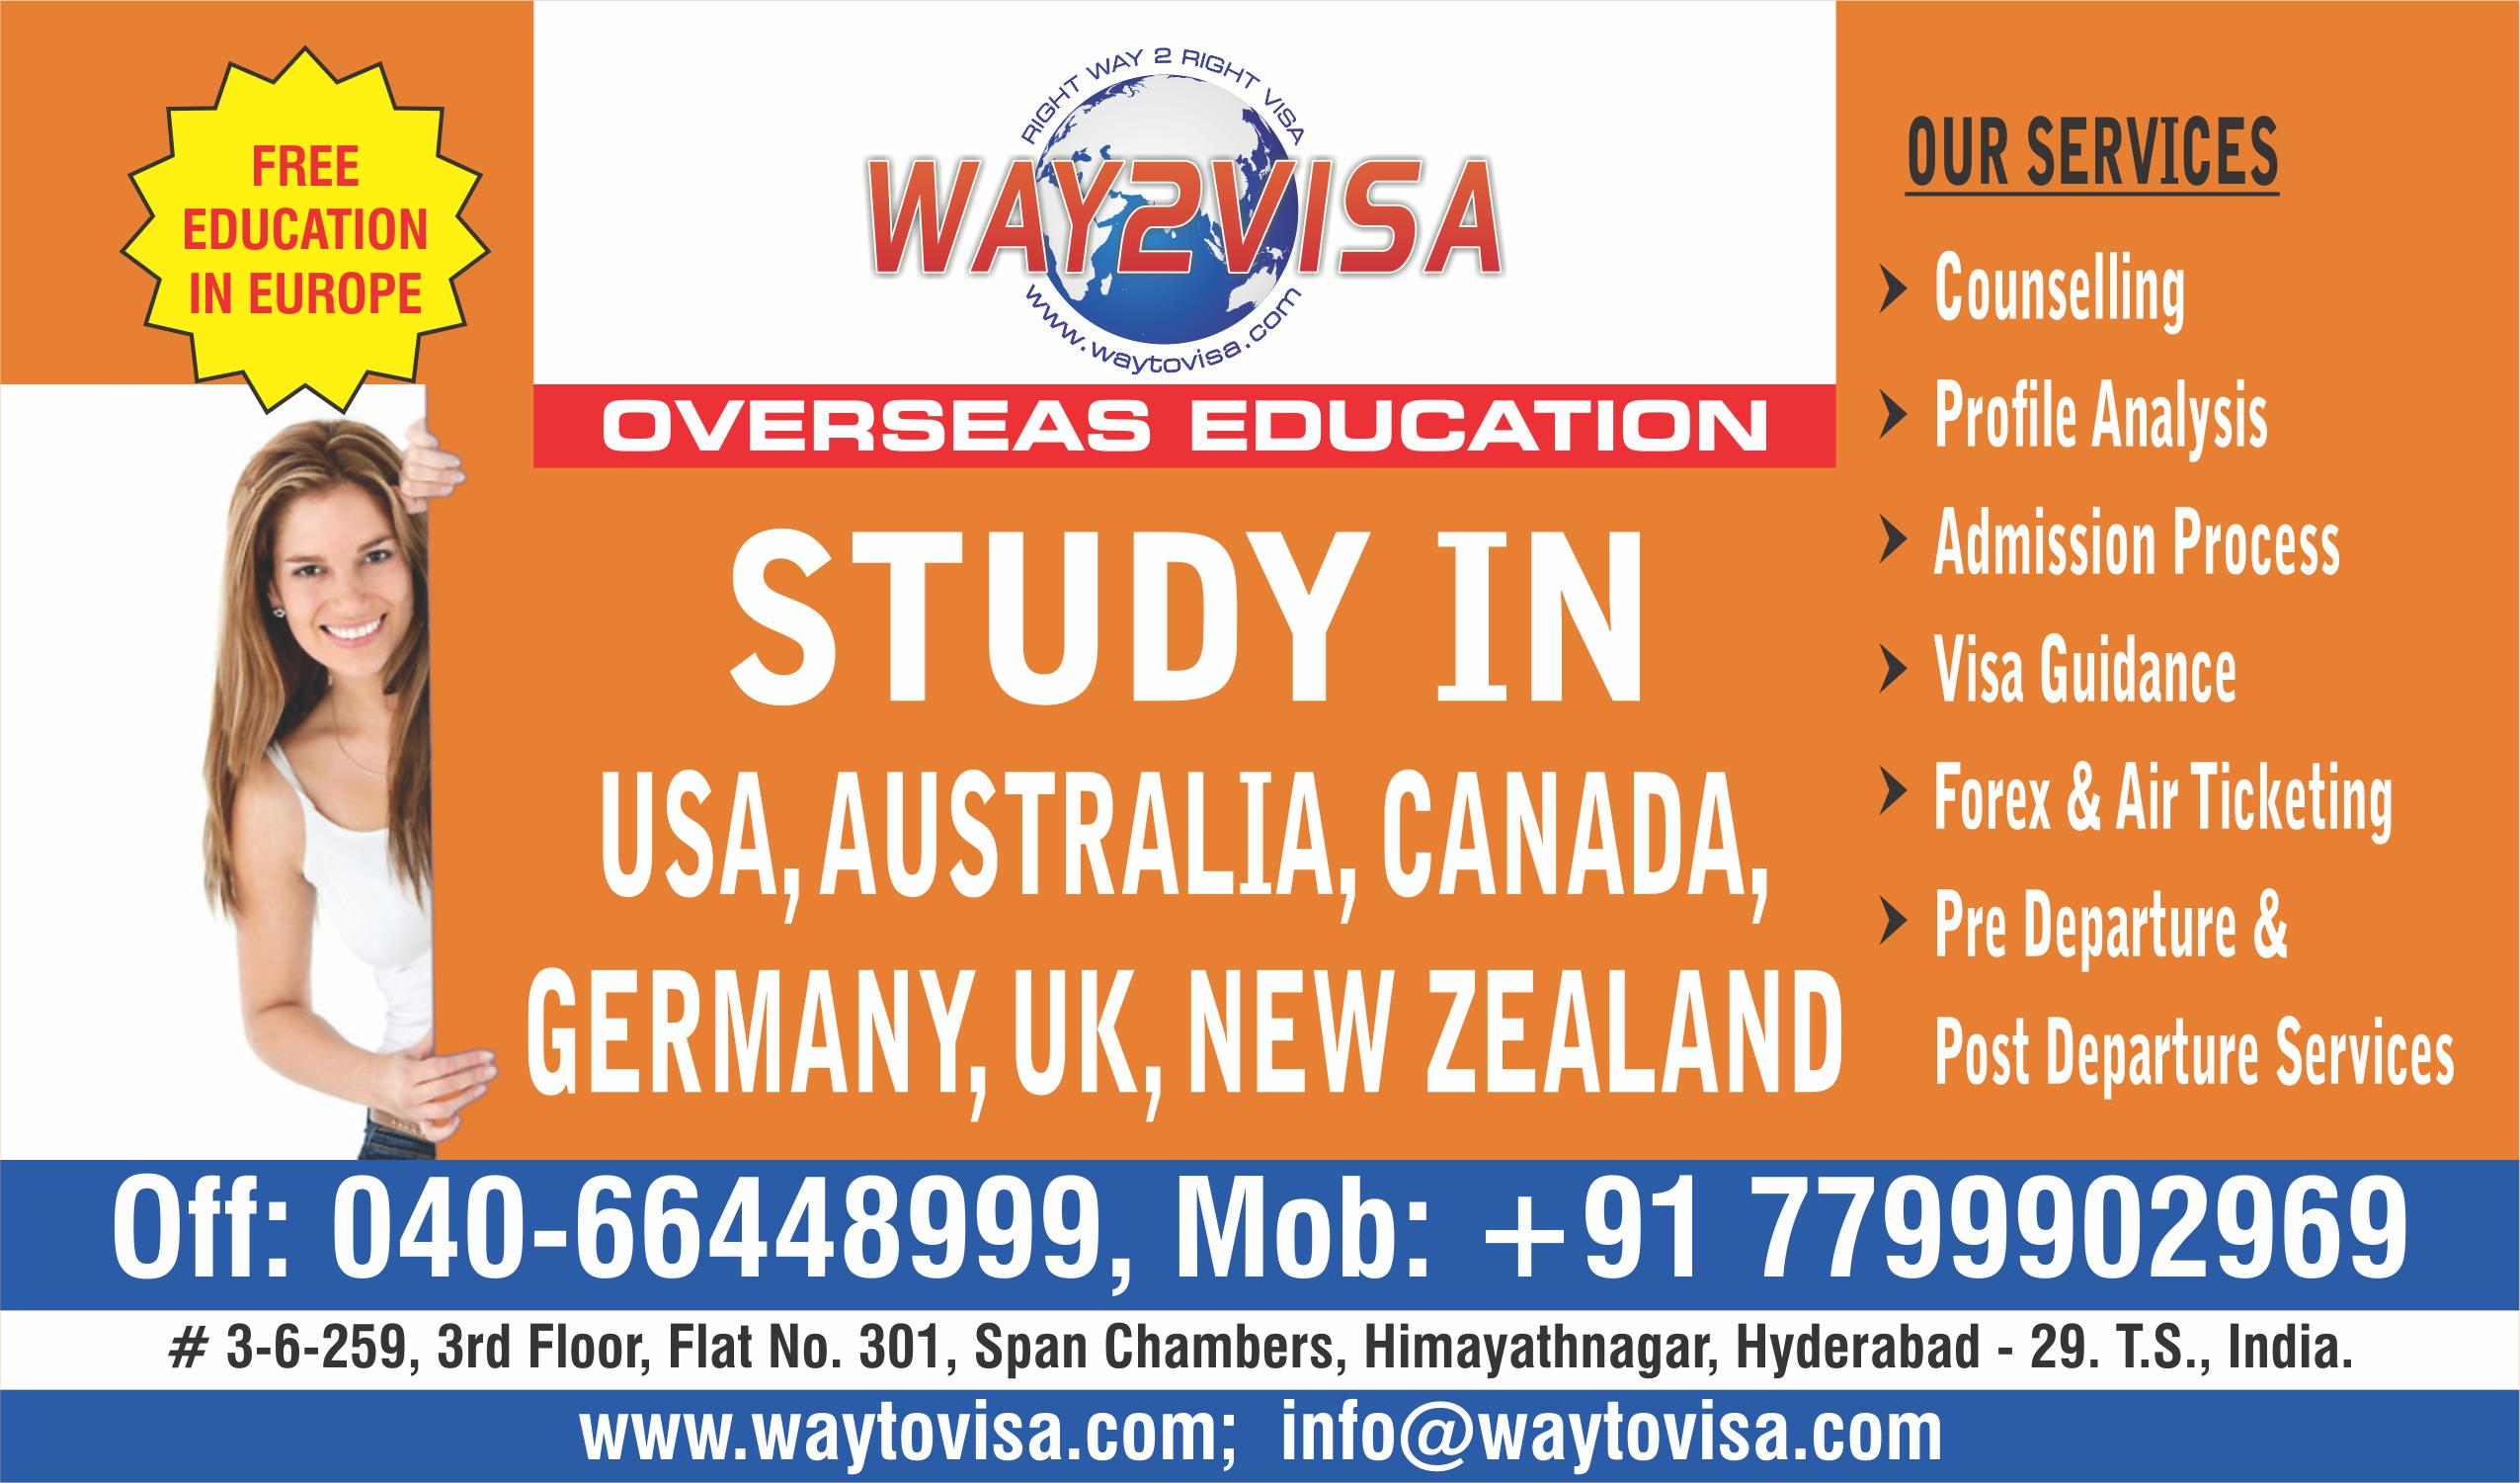 WAY 2 VISA CONSULTING INDIA PVT.LTD